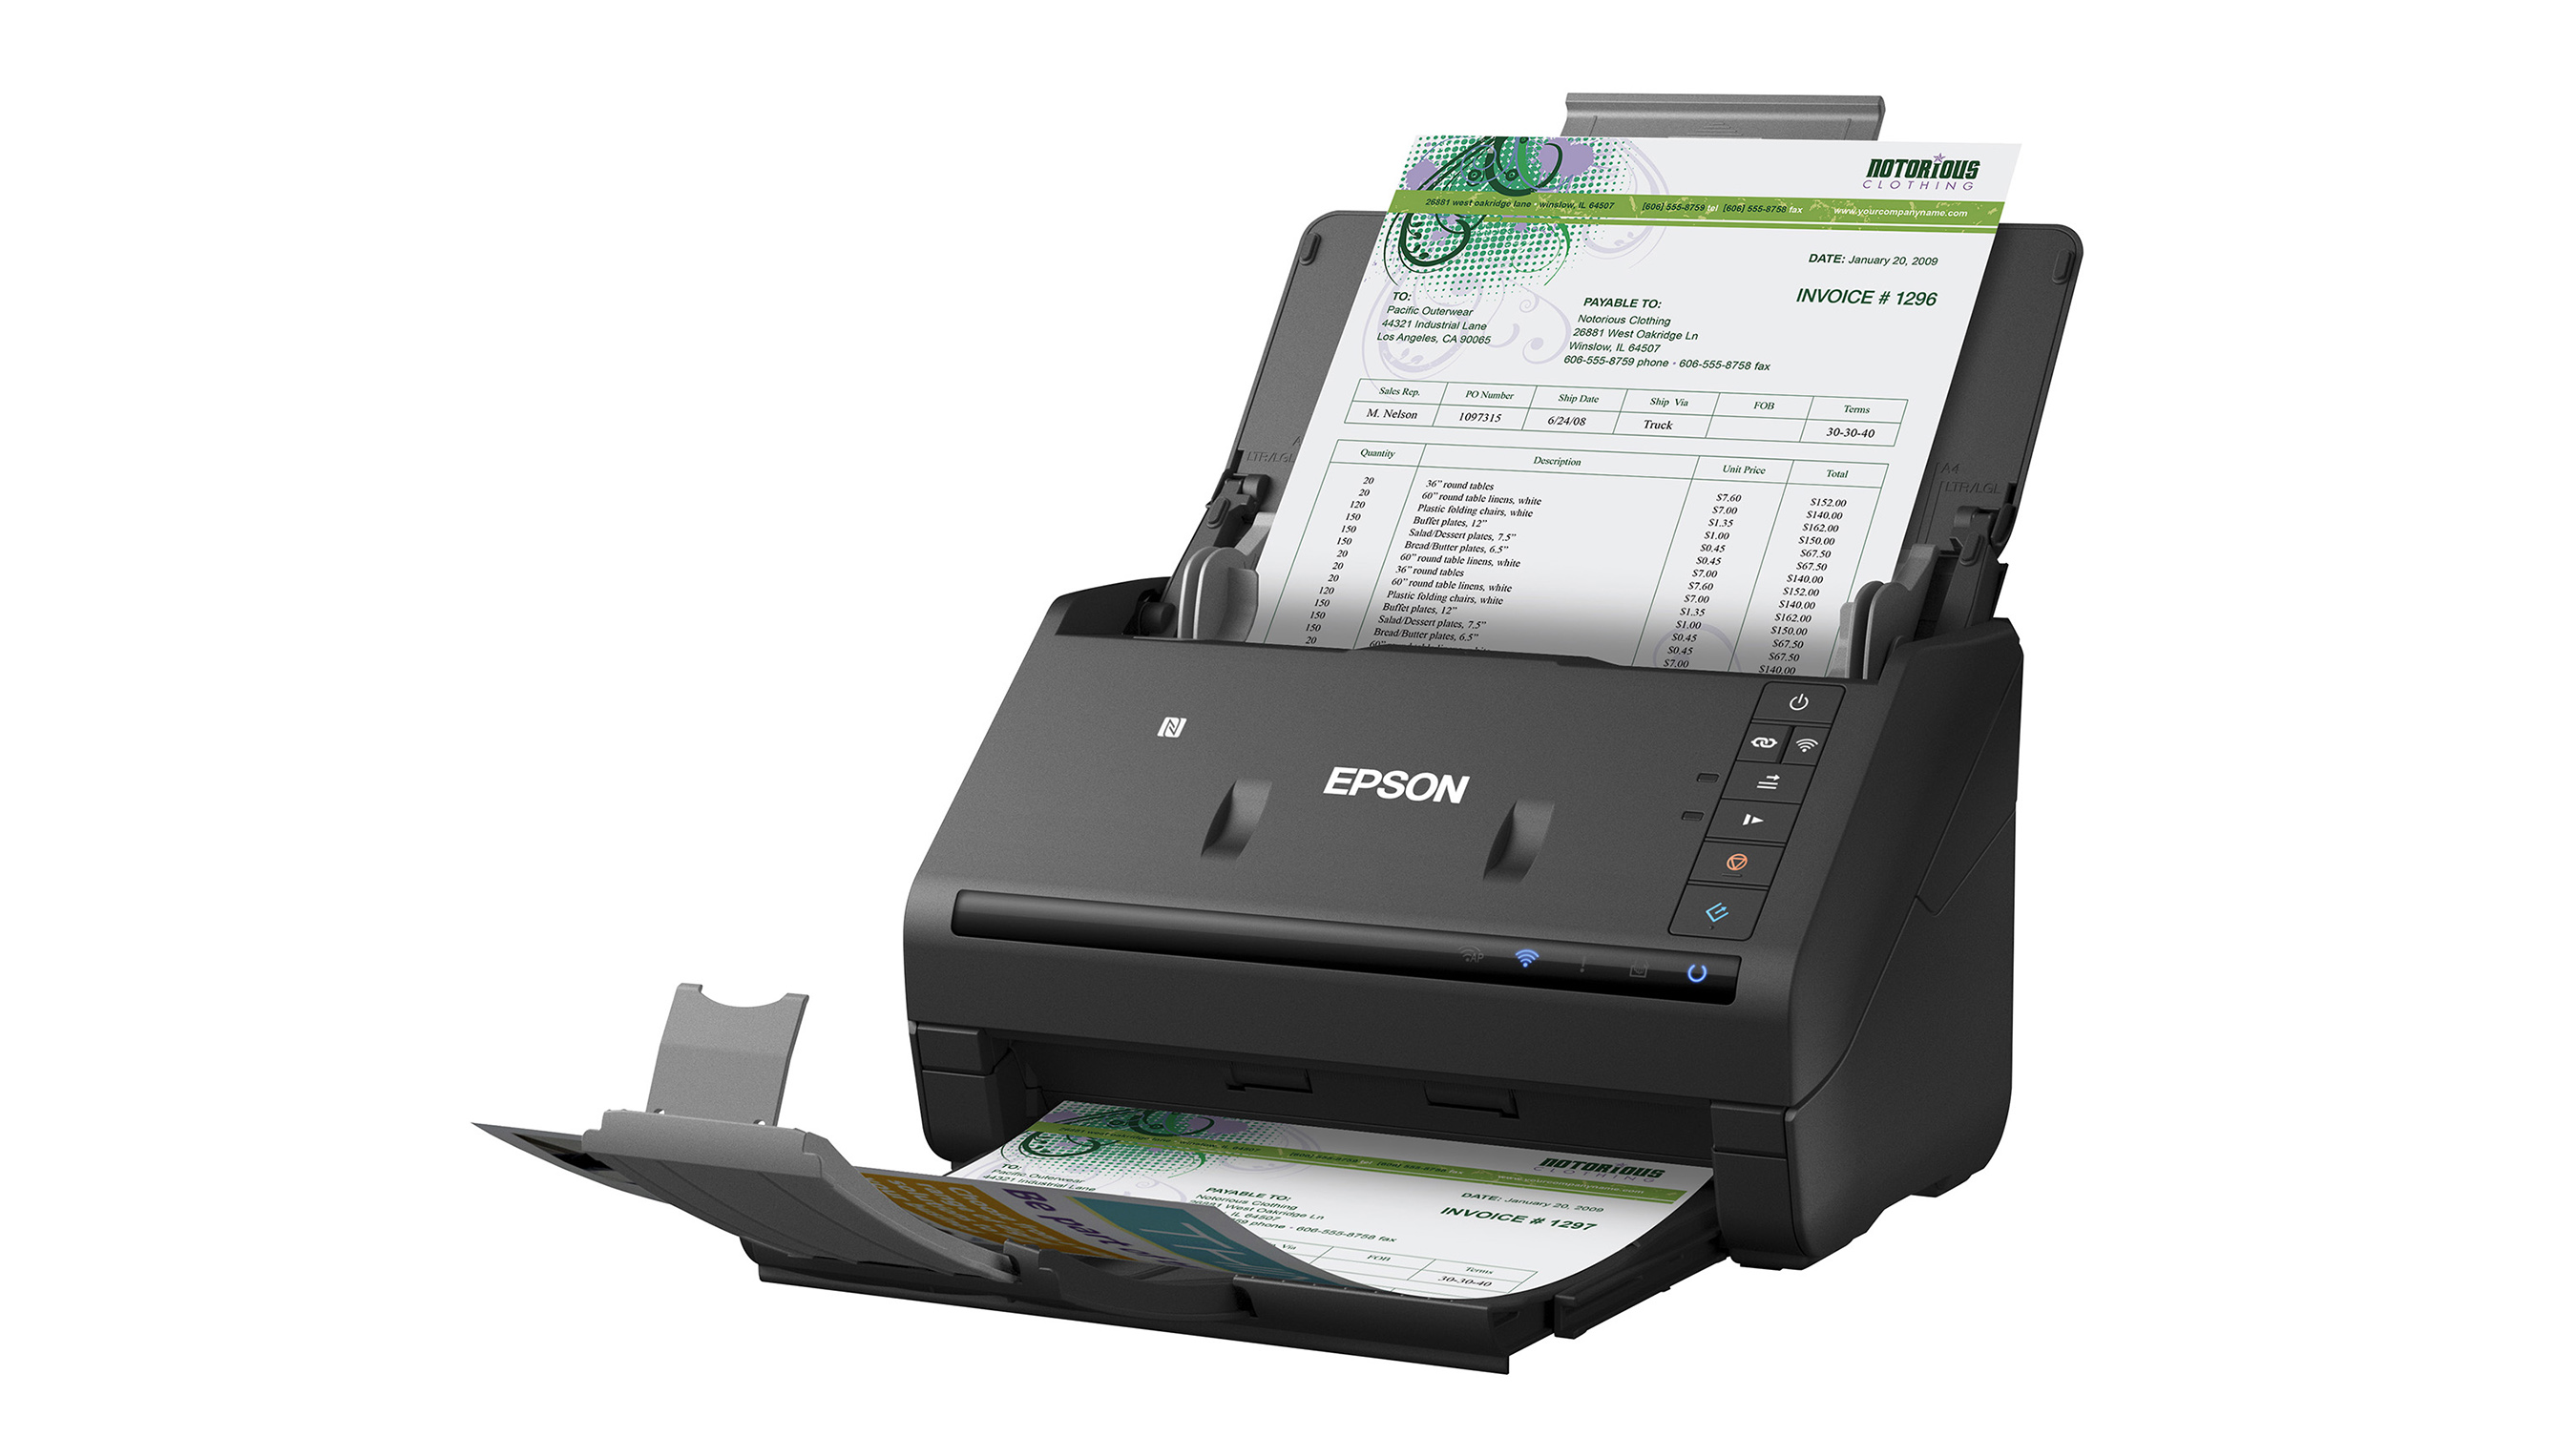 The WorkForce® ES-500WR receipt and document scanner can wirelessly scan various paper documents directly to a smartphone, tablet, computer, and online cloud storage accounts.